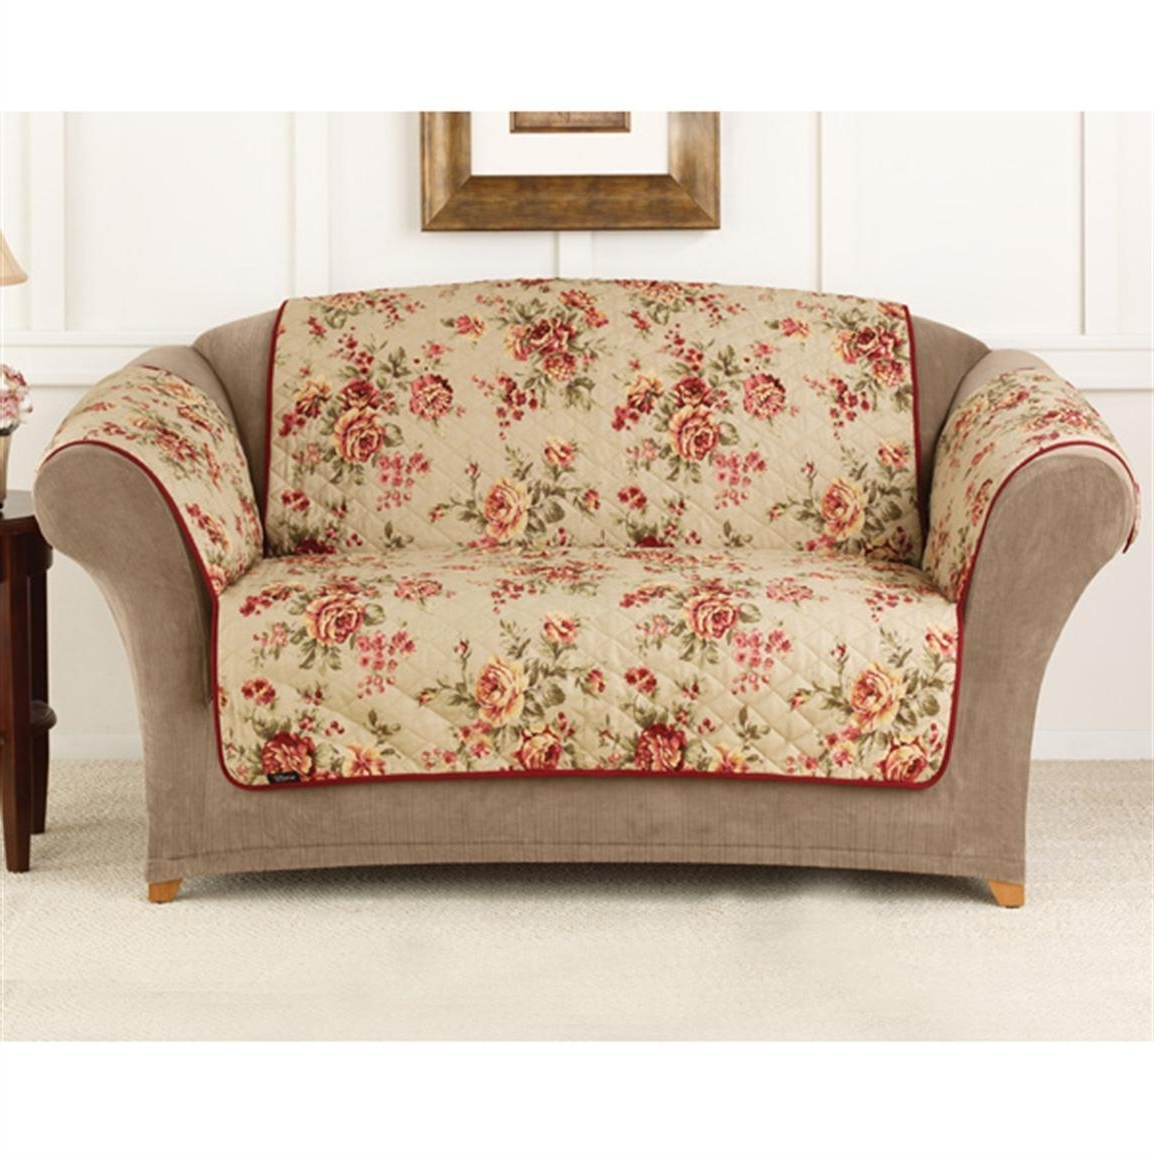 Furniture : Covers For Sofas And Couch Sure Fit Lexington Floral For 2018 Chintz Floral Sofas (View 15 of 15)